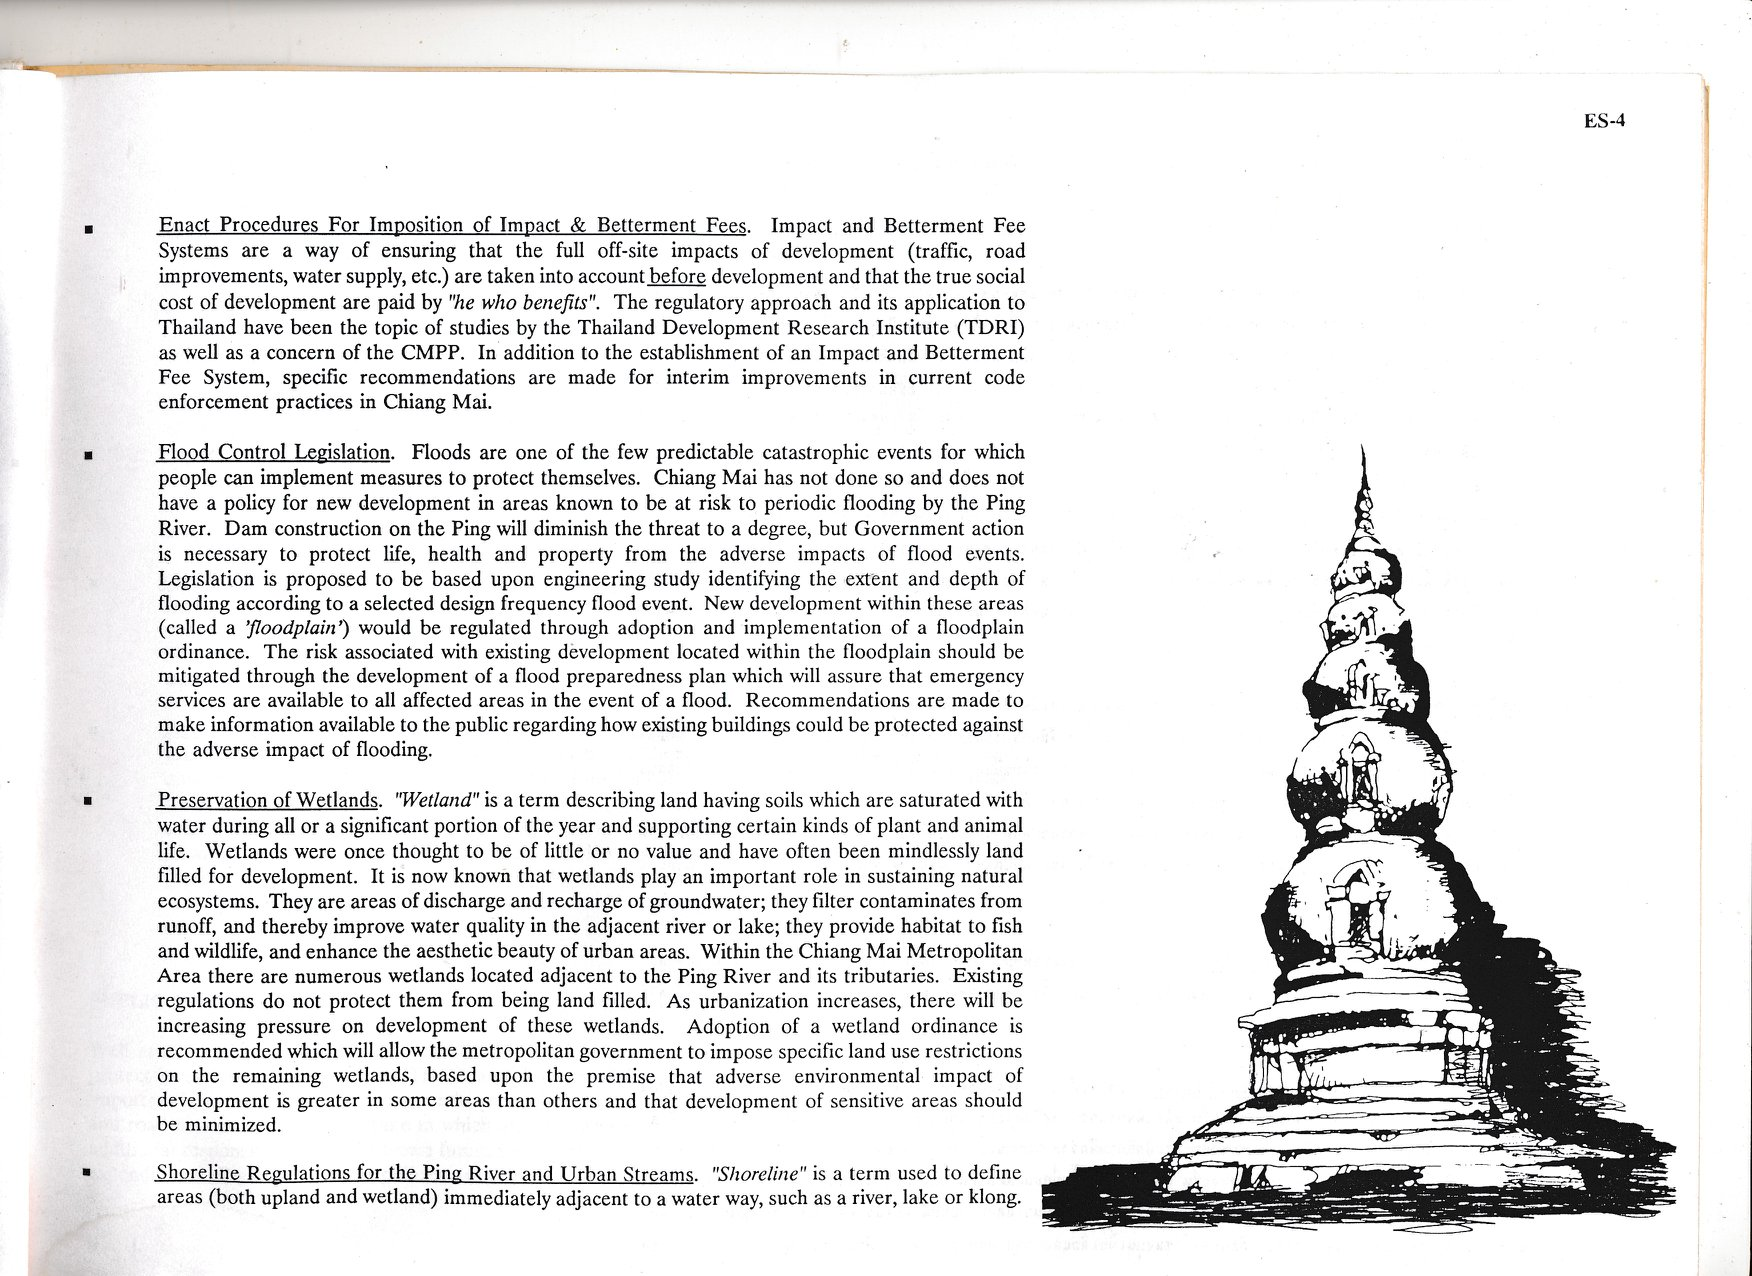 Page 4 of the Chiang Mai Policy-Based Action Plan for historic and environmental preservation